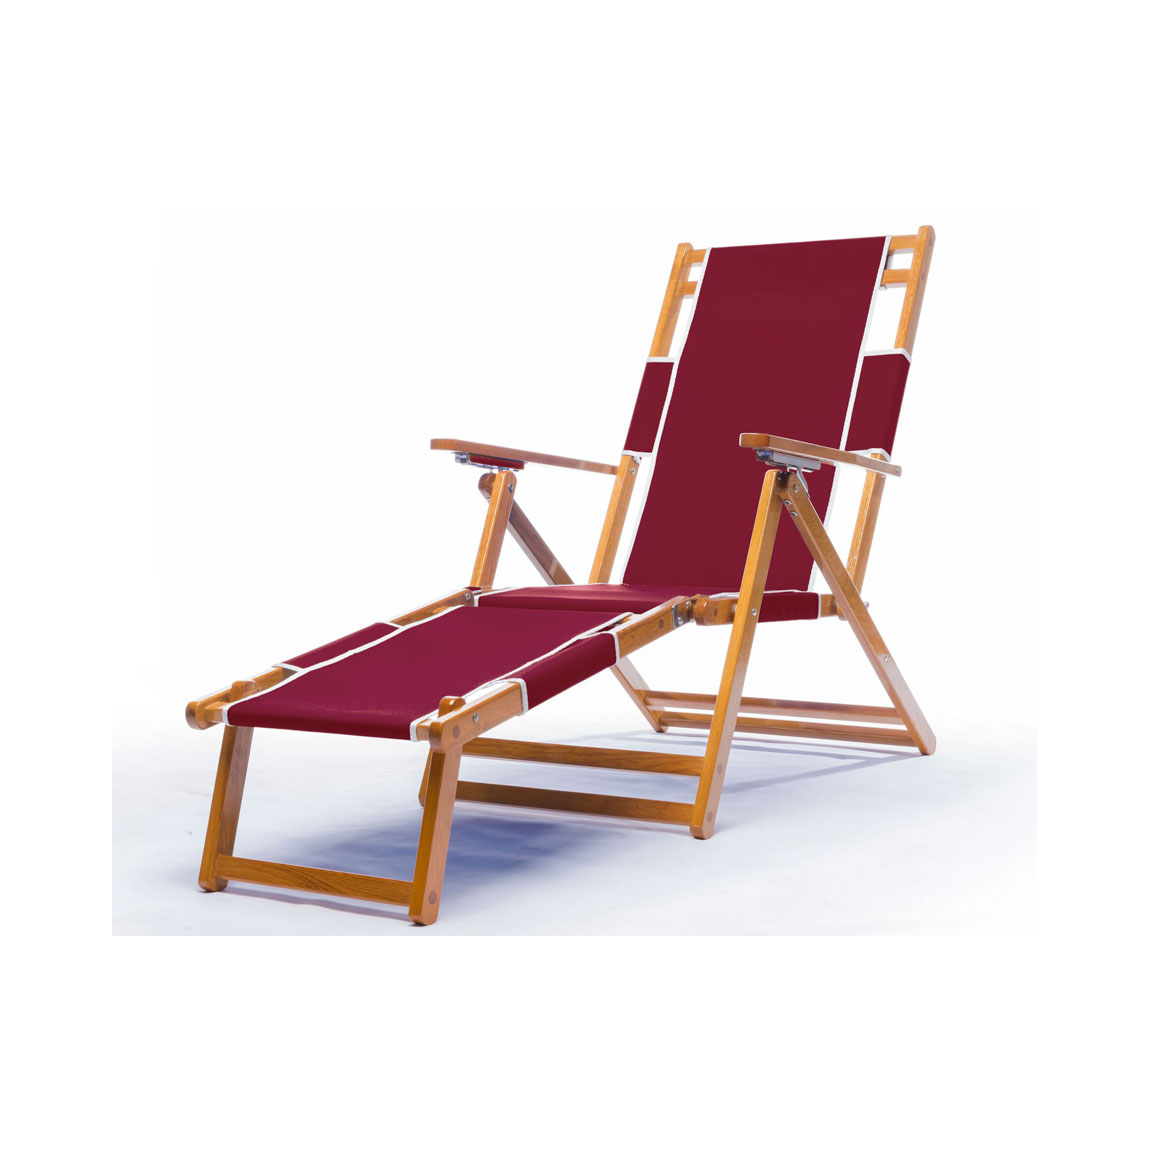 Folding Wood Beach Chair Details About Heavy Duty Commercial Grade Oak Wood Beach Chair Chaise Lounger